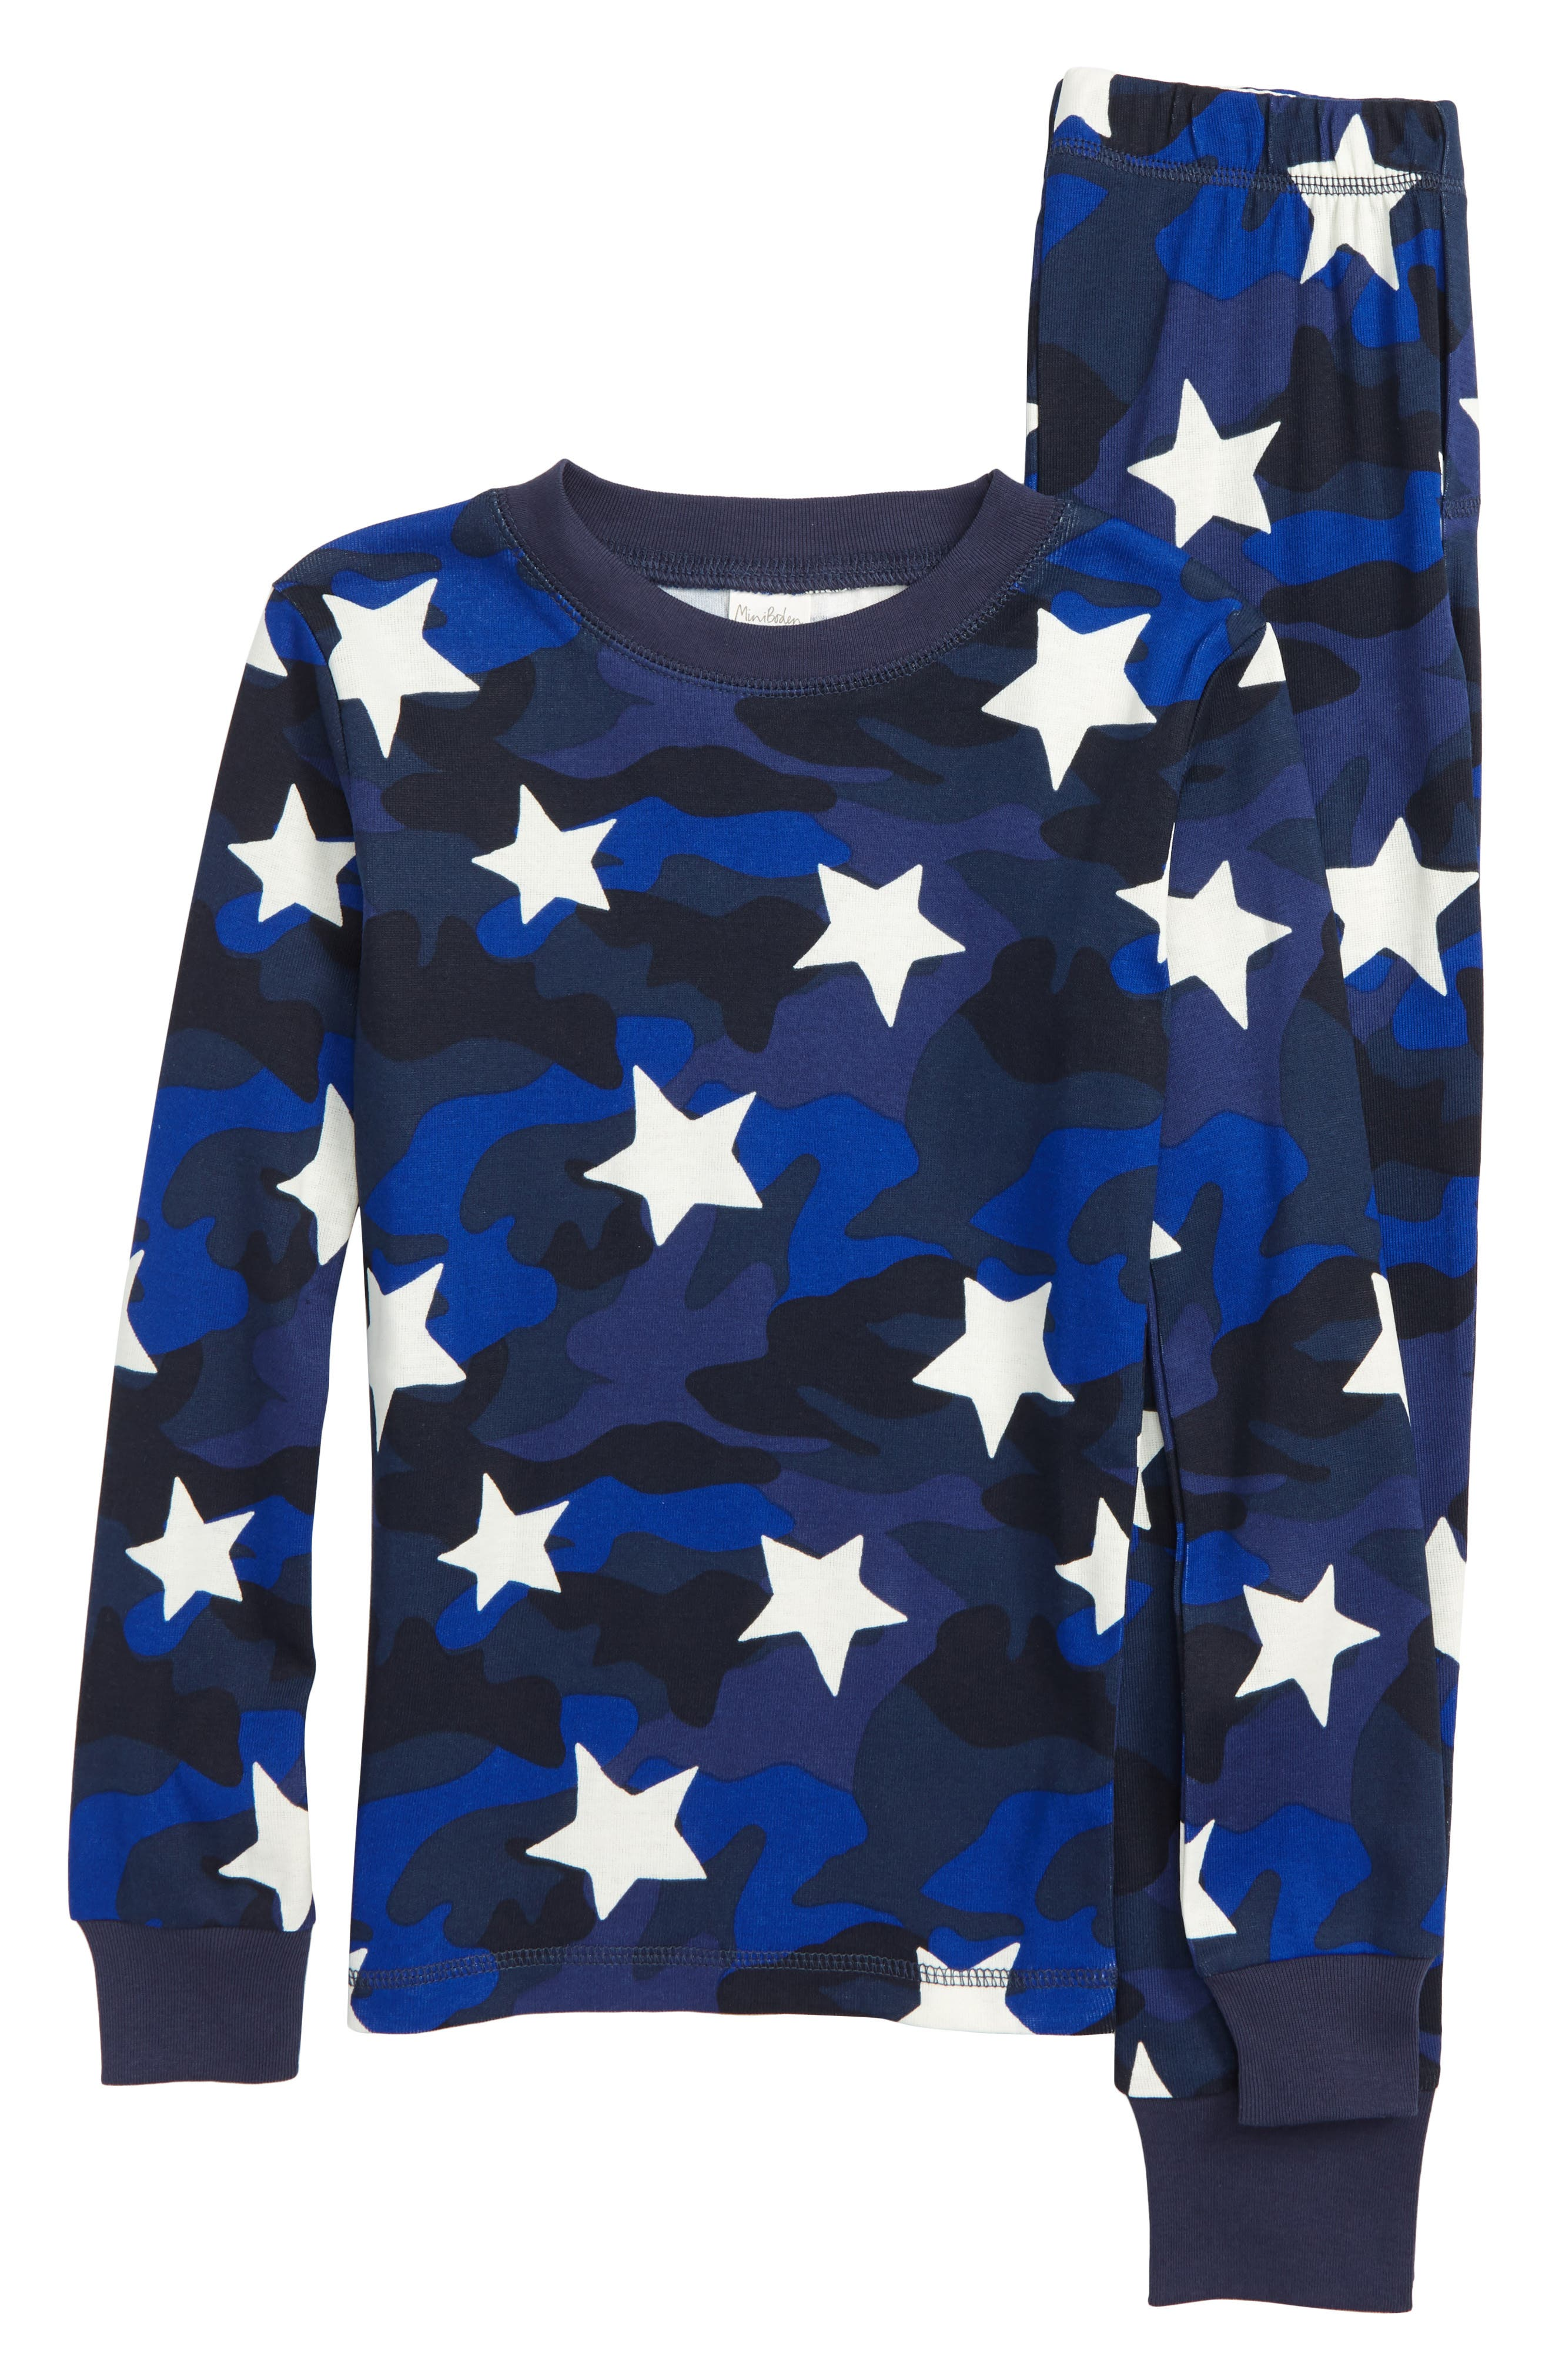 Glow-in-the-Dark Fitted Two-Piece Pajamas,                             Main thumbnail 1, color,                             NAVY CAMOUFLAGE STAR